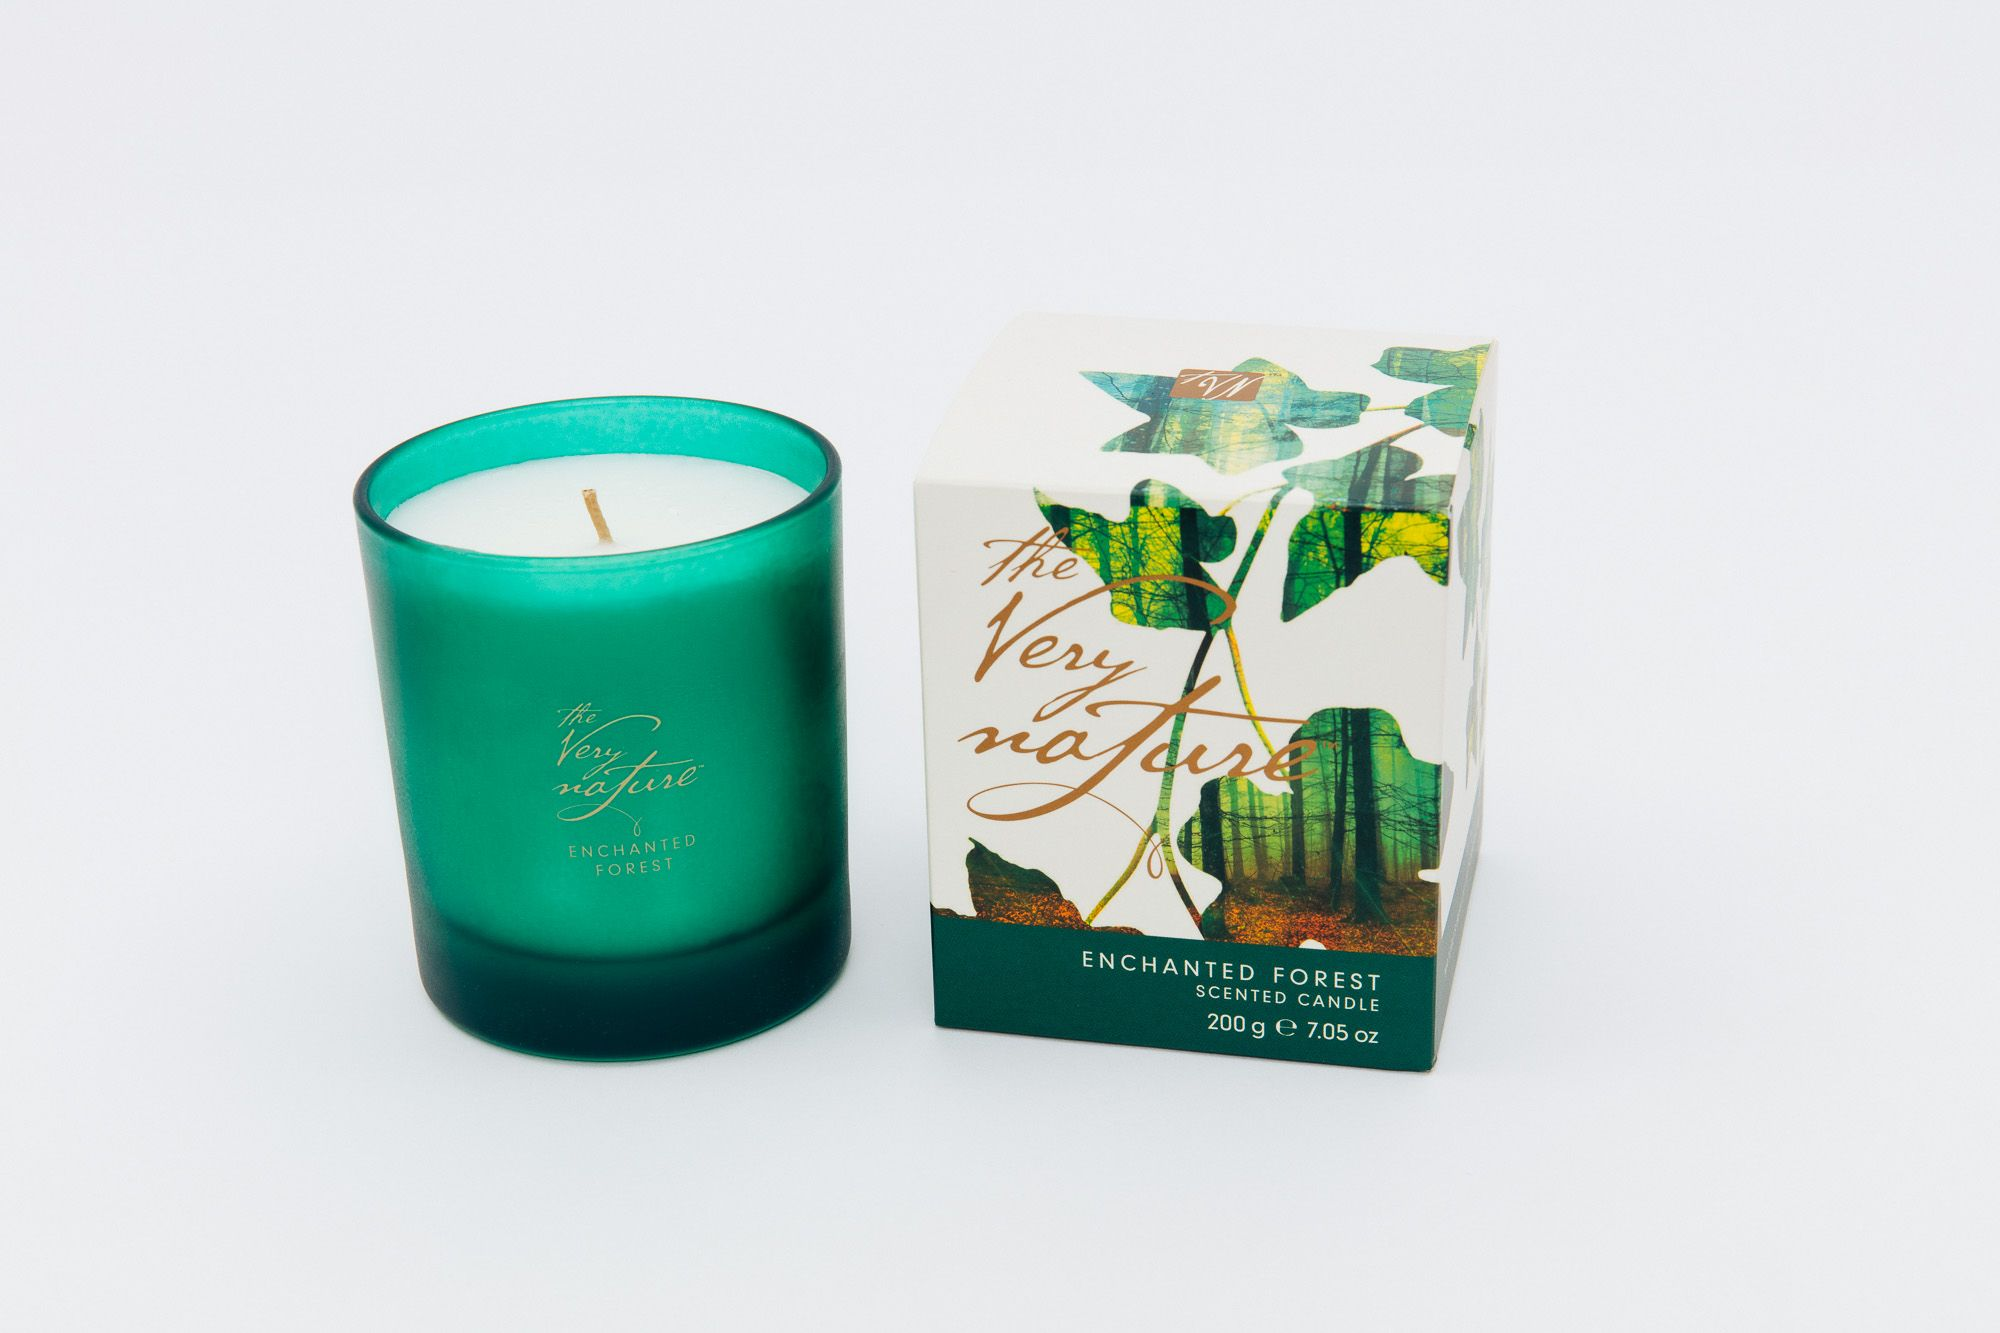 Image of The Very Nature Enchanted Forest Candle 200g